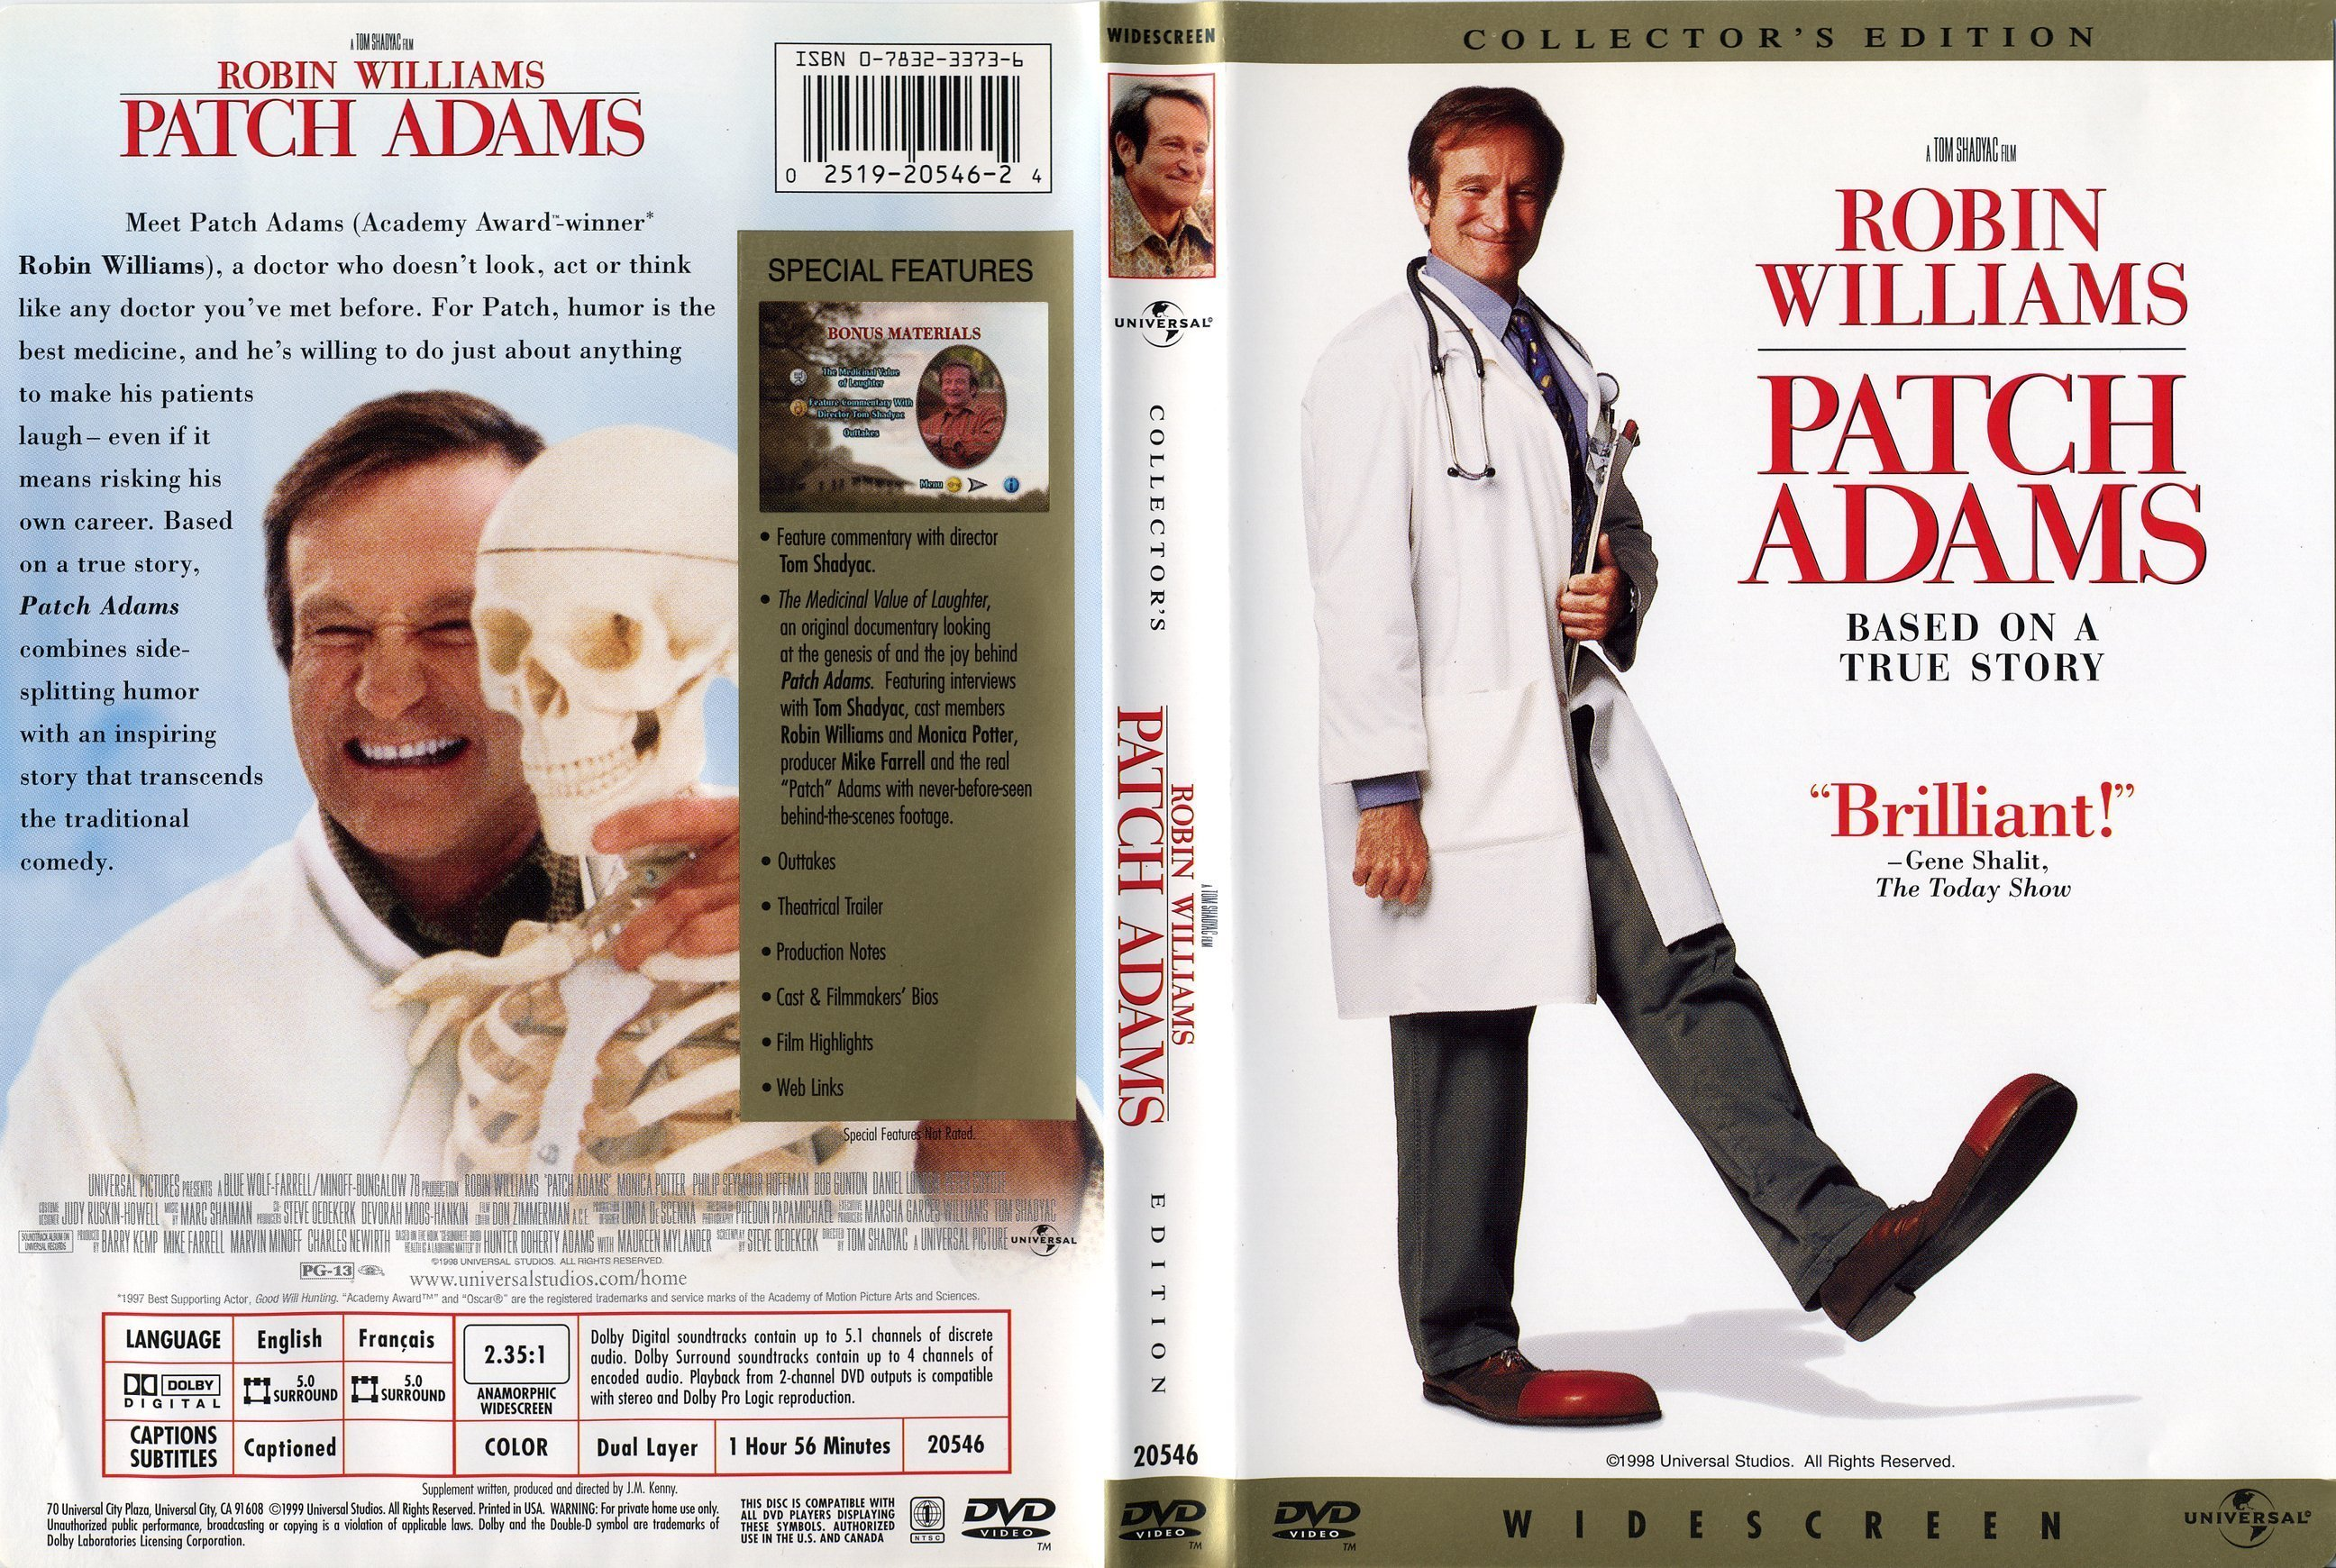 a critique of the movie patch adams directed by tom shadyac Profile of and interview with dr hunter d adams, better known as patch, who has spent his adult life criticizing what he sees as greed of the medical profession 53-year-old physician is portrayed in movie patch adams, directed by tom shadyac film stars robin williams as a doctor who sees medicine itself as critically ill from an.